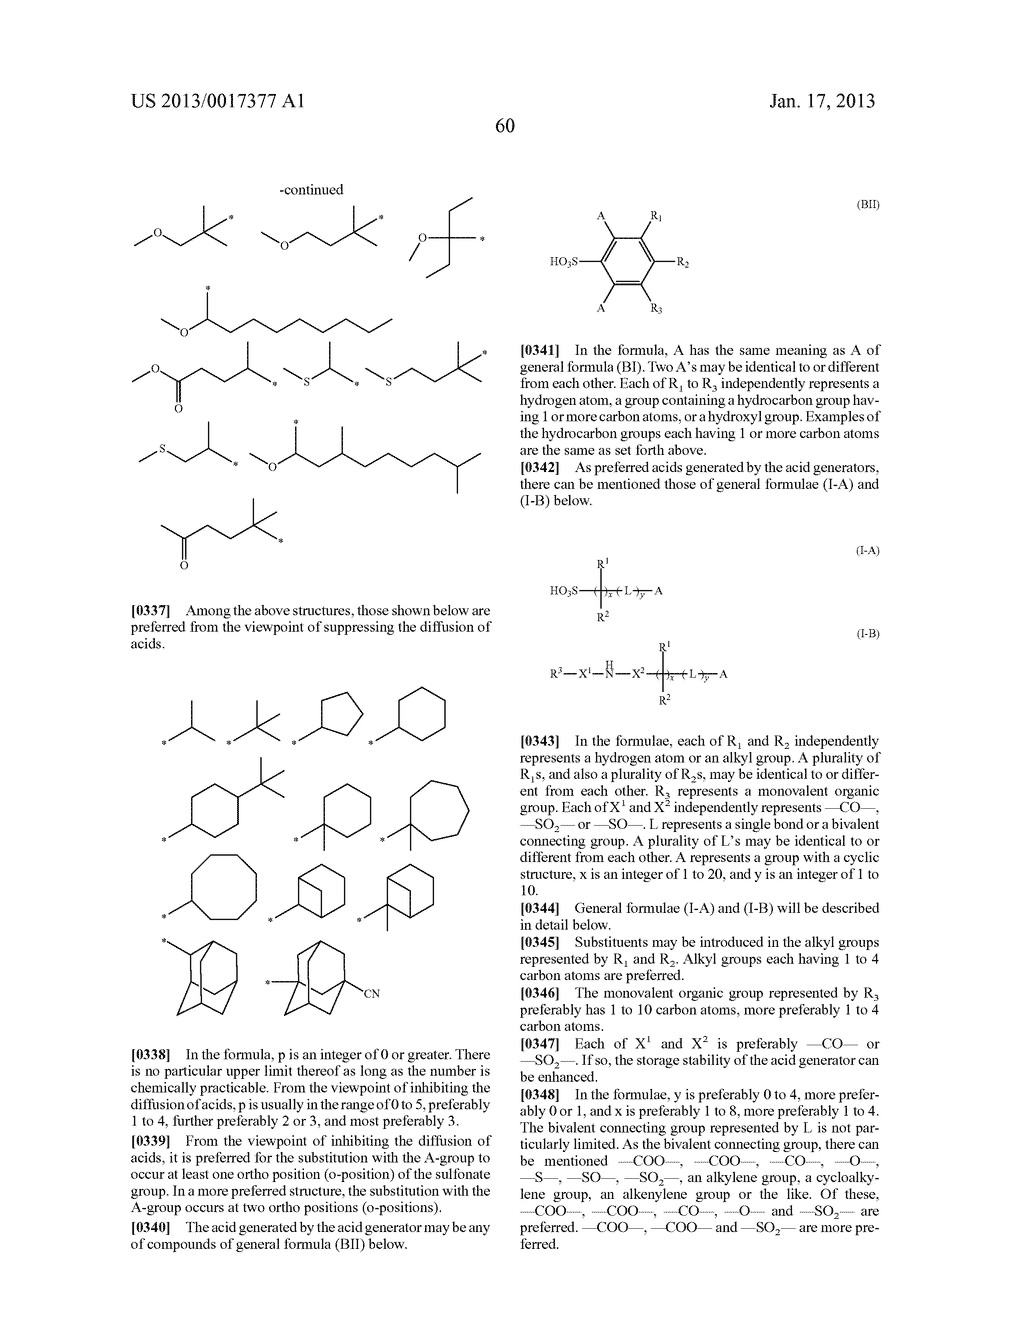 ACTINIC-RAY- OR RADIATION-SENSITIVE RESIN COMPOSITION AND METHOD OF     FORMING PATTERN USING THE SAMEAANM Kataoka; ShoheiAACI ShizuokaAACO JPAAGP Kataoka; Shohei Shizuoka JPAANM Iwato; KaoruAACI ShizuokaAACO JPAAGP Iwato; Kaoru Shizuoka JPAANM Kamimura; SouAACI ShizuokaAACO JPAAGP Kamimura; Sou Shizuoka JPAANM Tsuchihashi; ToruAACI ShizuokaAACO JPAAGP Tsuchihashi; Toru Shizuoka JPAANM Enomoto; YuichiroAACI ShizuokaAACO JPAAGP Enomoto; Yuichiro Shizuoka JPAANM Fujii; KanaAACI ShizuokaAACO JPAAGP Fujii; Kana Shizuoka JPAANM Mizutani; KazuyoshiAACI ShizuokaAACO JPAAGP Mizutani; Kazuyoshi Shizuoka JPAANM Tarutani; ShinjiAACI ShizuokaAACO JPAAGP Tarutani; Shinji Shizuoka JPAANM Kato; KeitaAACI ShizuokaAACO JPAAGP Kato; Keita Shizuoka JP - diagram, schematic, and image 61